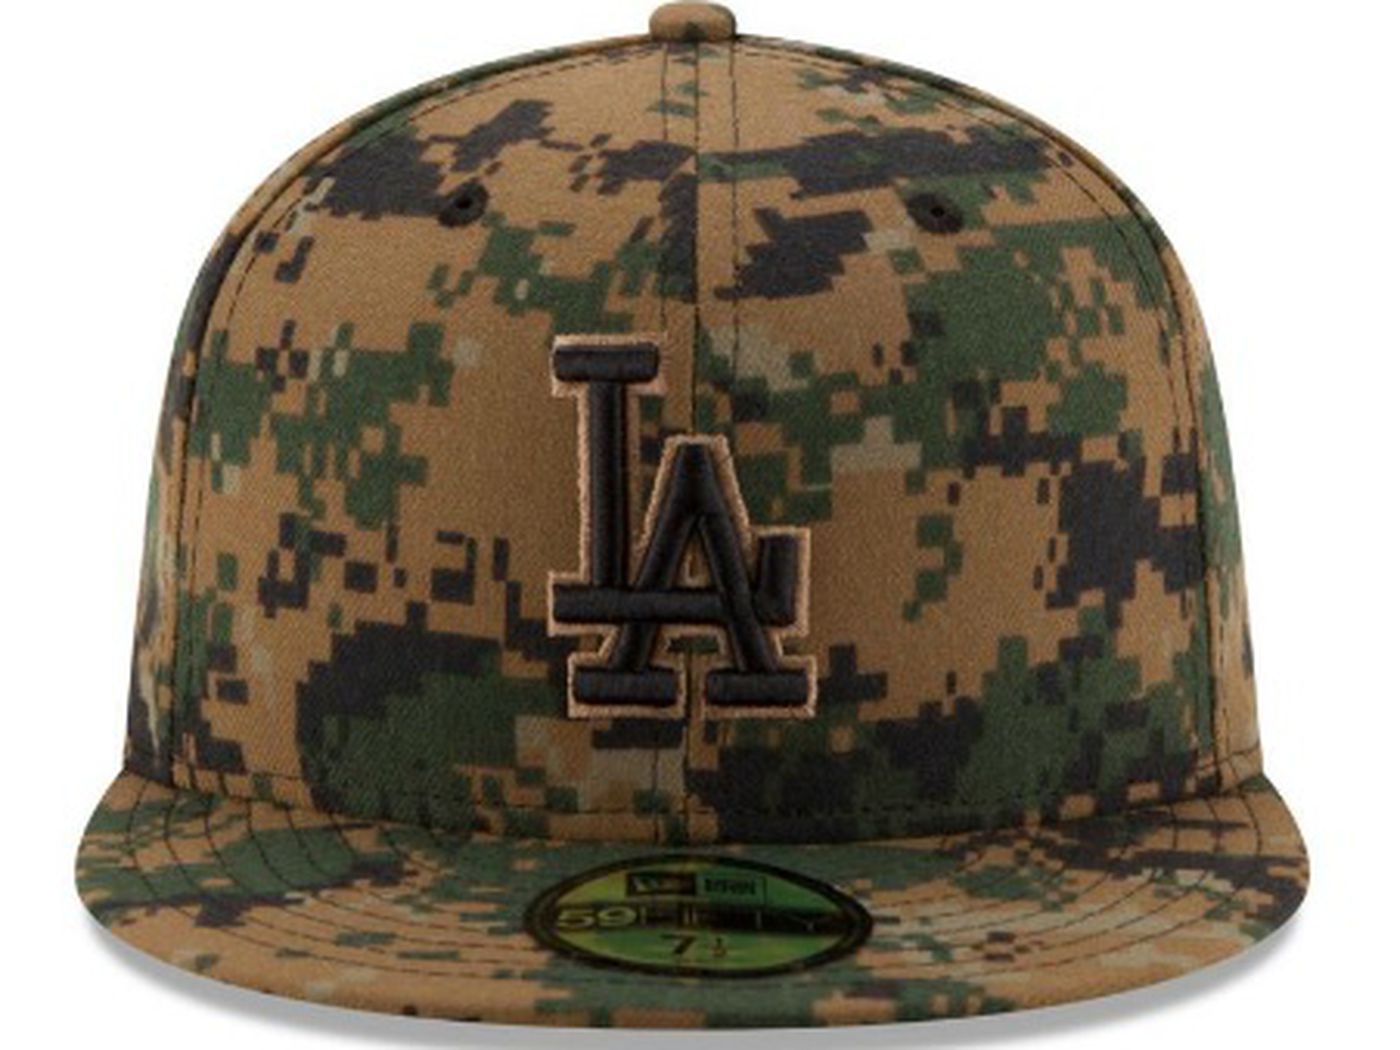 Dodgers will wear these caps   jerseys on Memorial Day - True Blue LA a227152af903